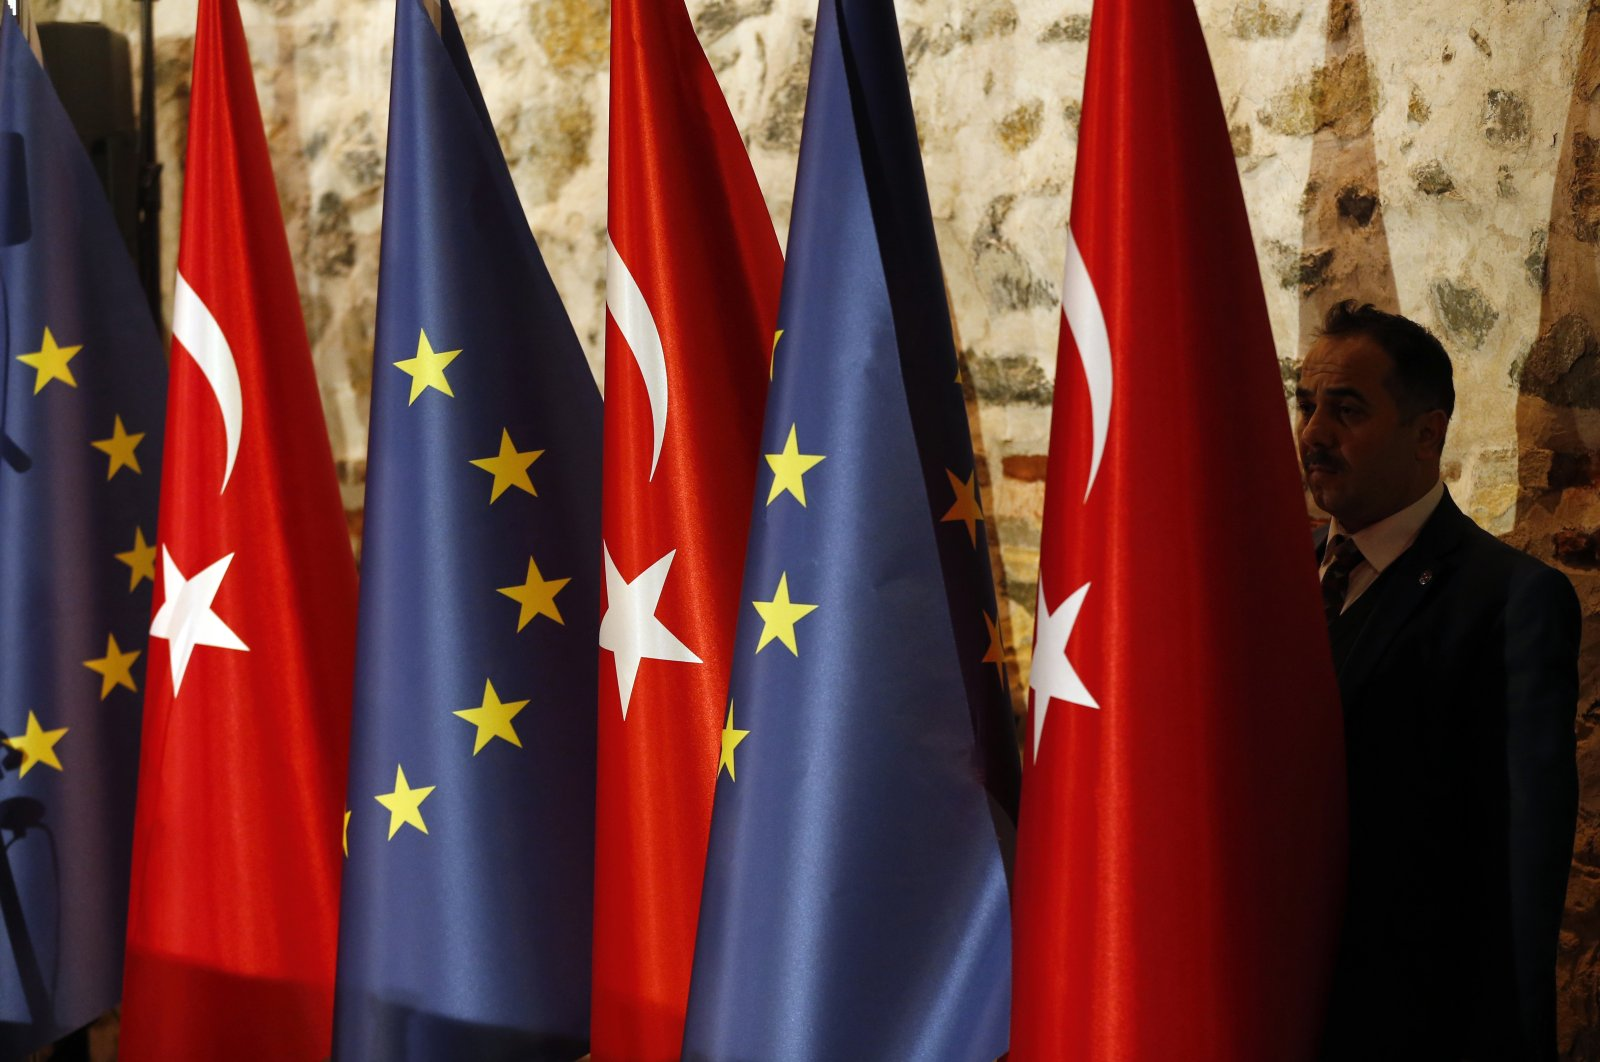 An official adjusts the flags of Turkey and the European Union prior to a bilateral meeting, Istanbul, Turkey, Feb. 28, 2019. (AP Photo)